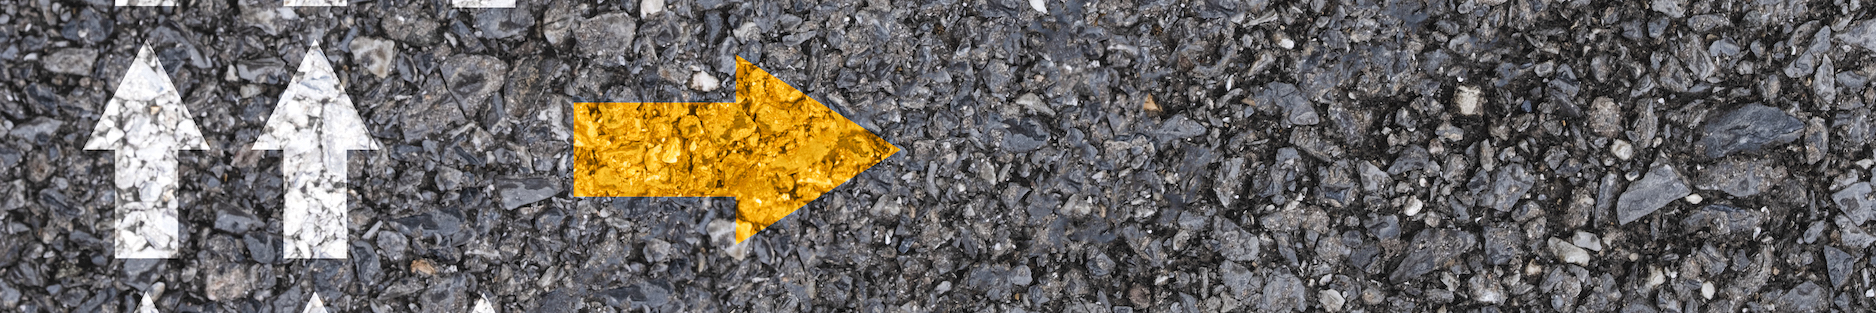 different-thinking-business-technology-disruption-concept-yellow-arrow-out-line-direction-with-white-arrow-road-asphalt.jpg